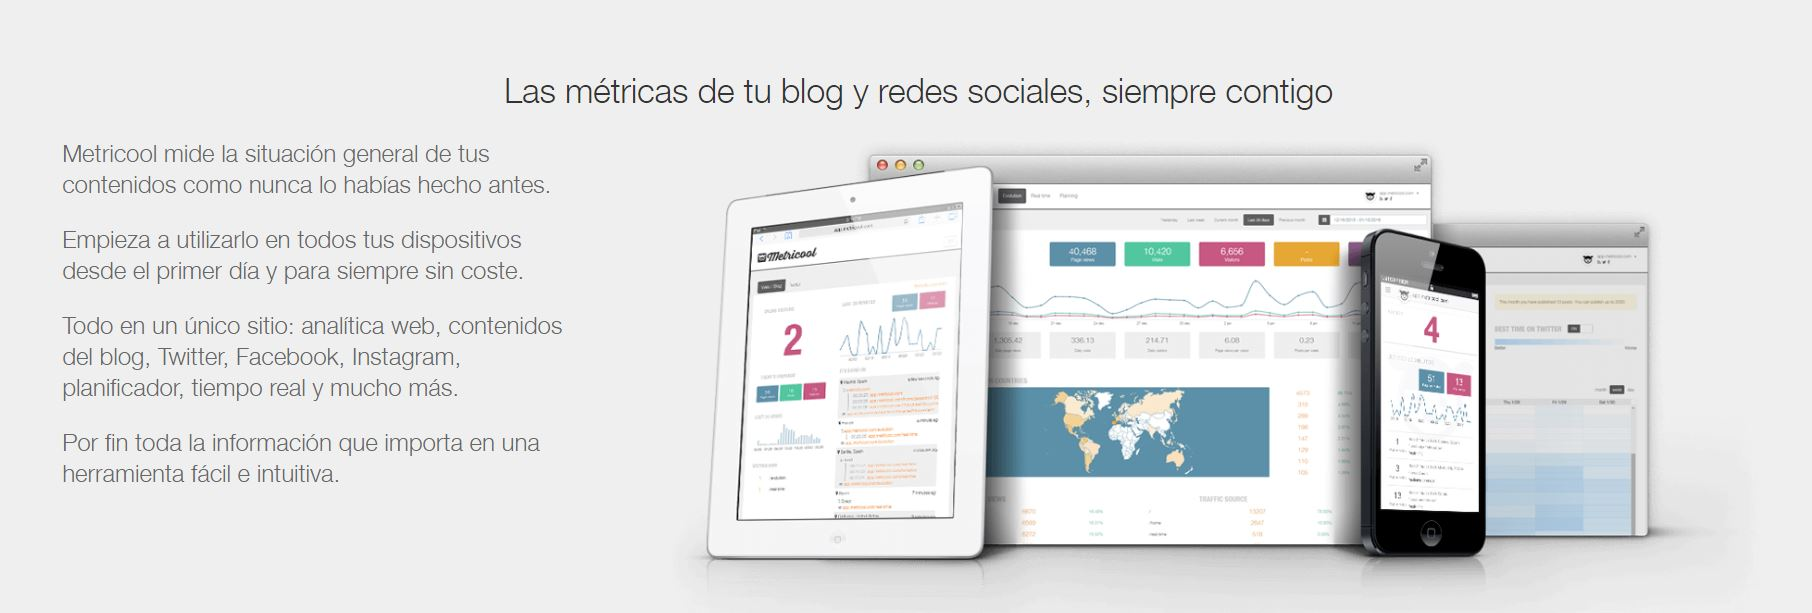 metricool-opiniones